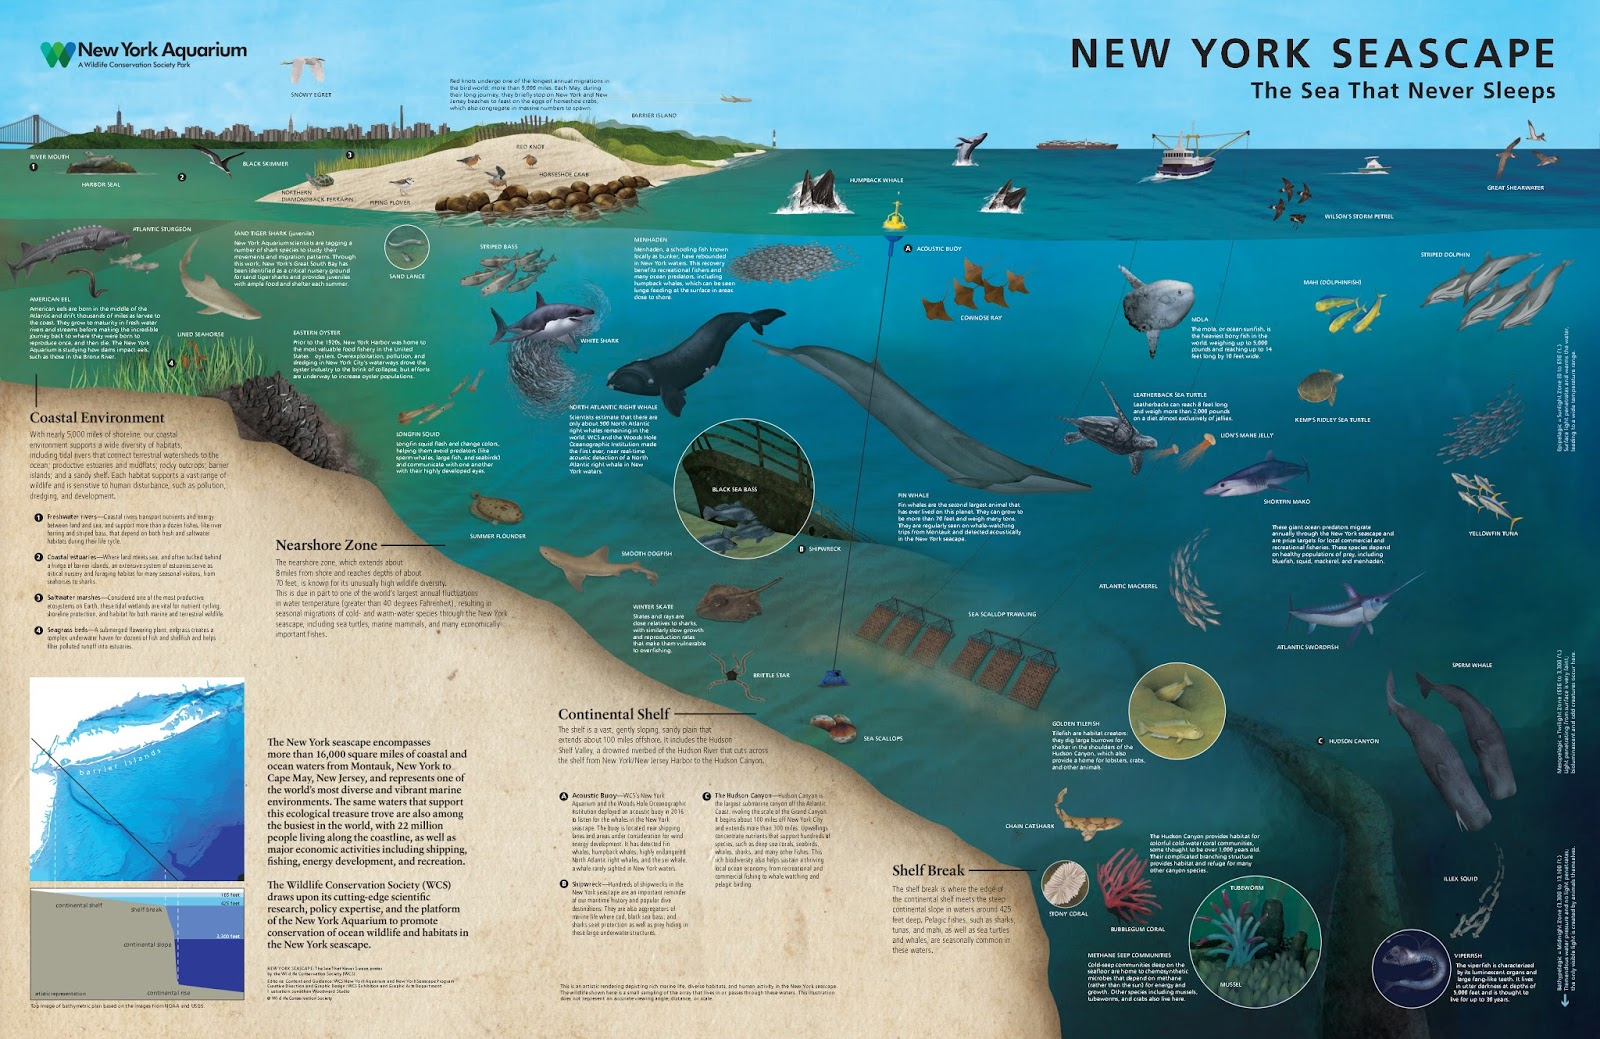 Explore the New York Seascape